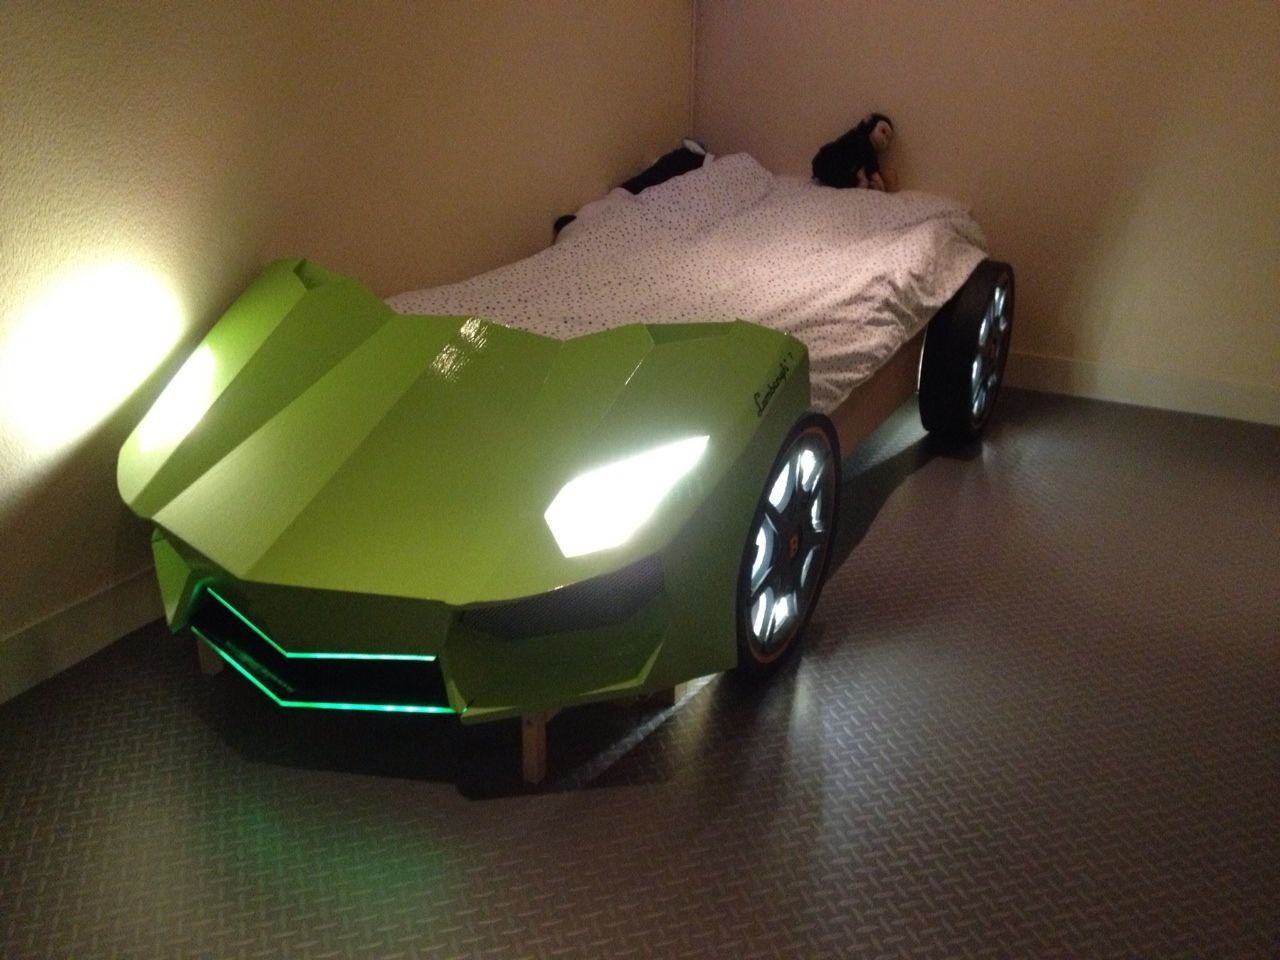 Lamborghini, autos and beds on pinterest